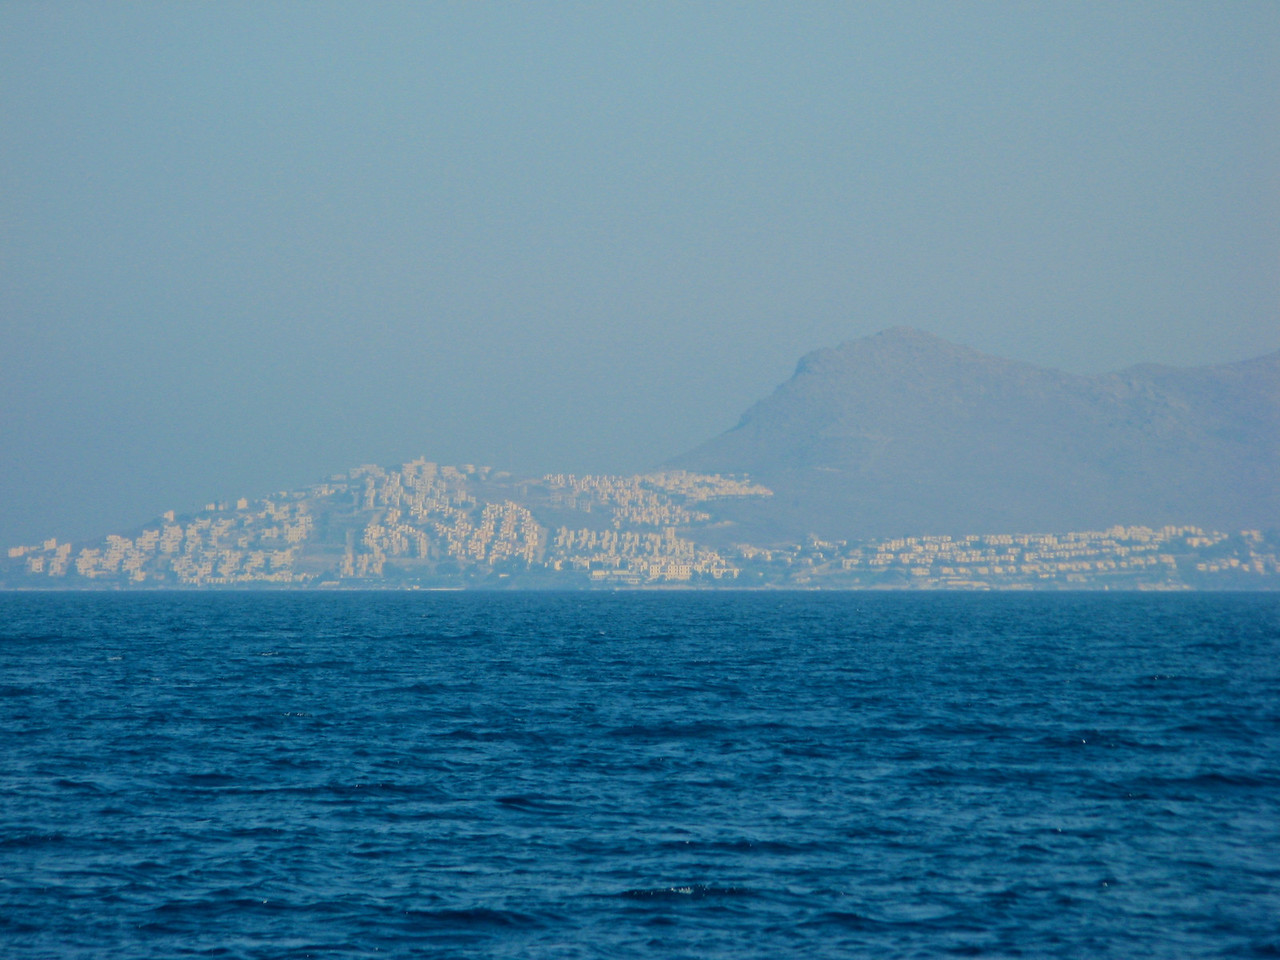 Looking across the water into Turkey.